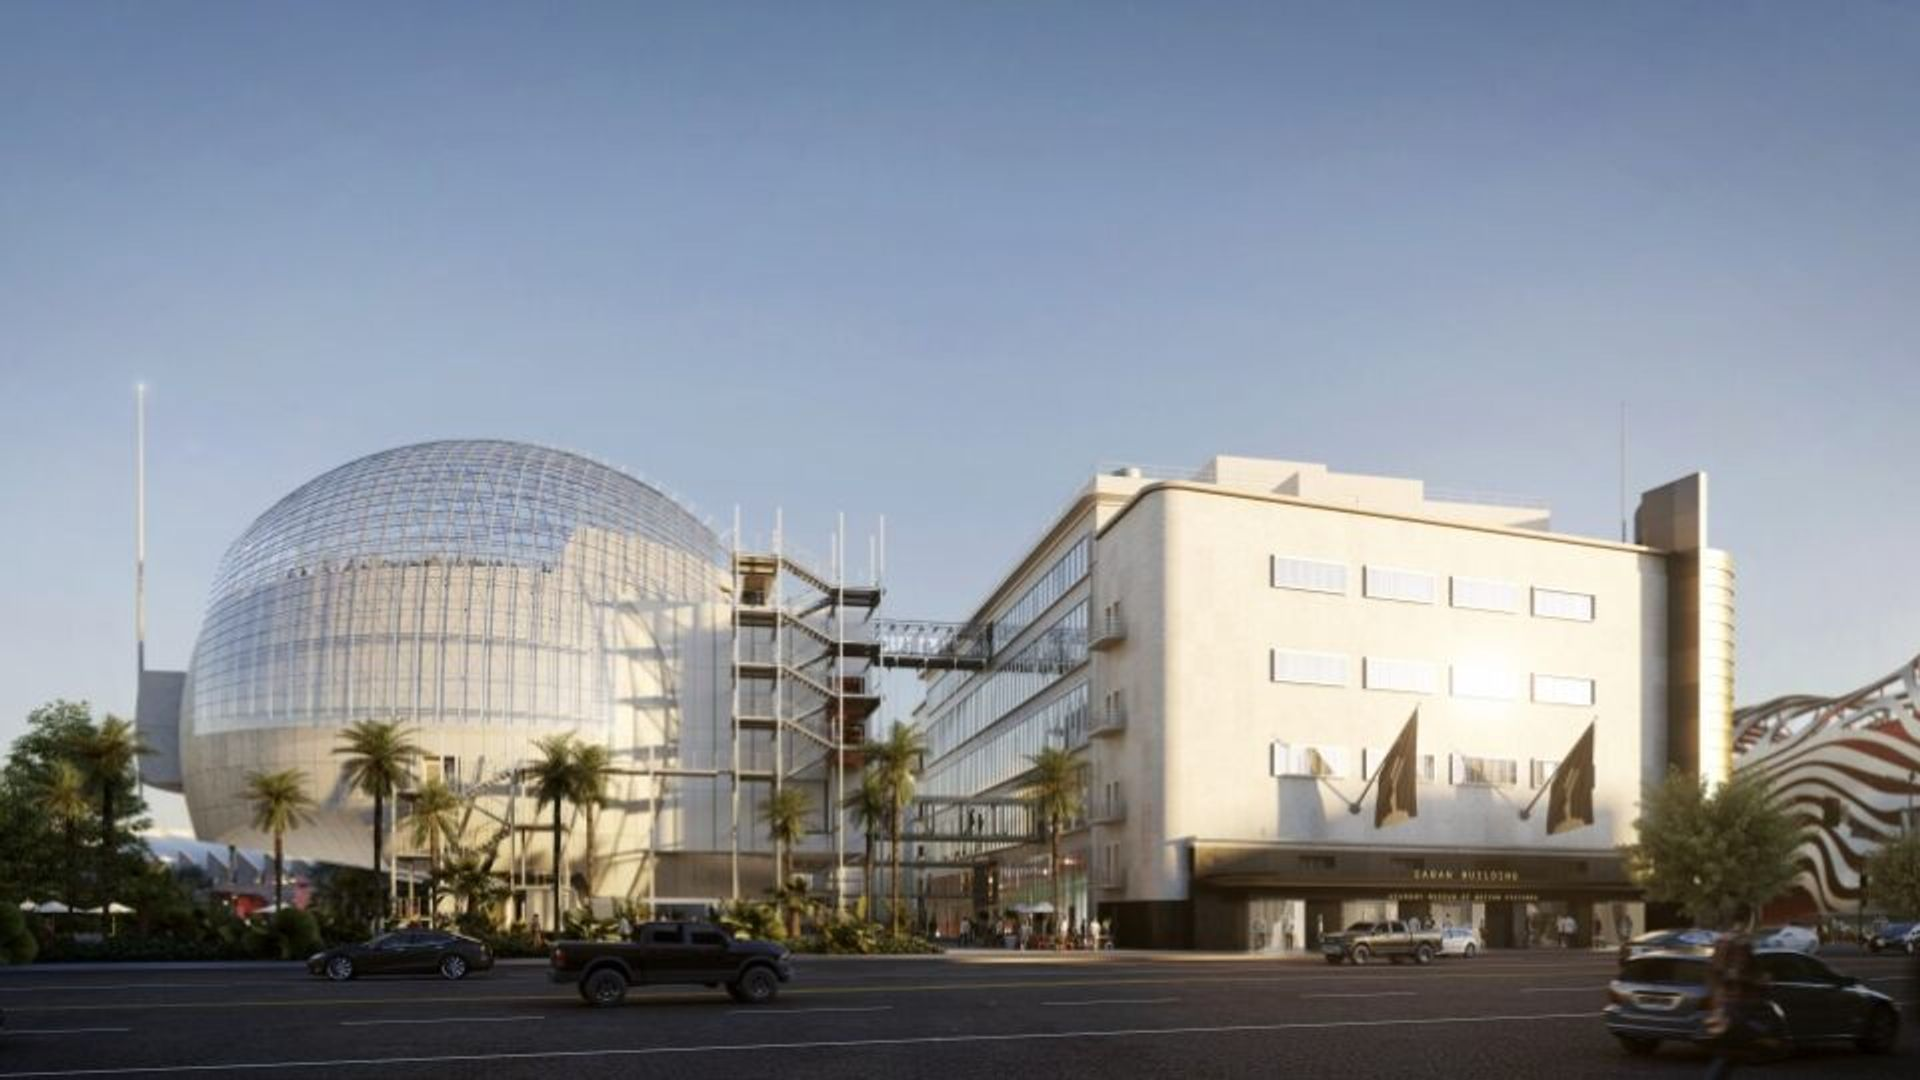 The Academy Museum of Motion Pictures in Los Angeles Courtesy of Academy Museum of Motion Pictures